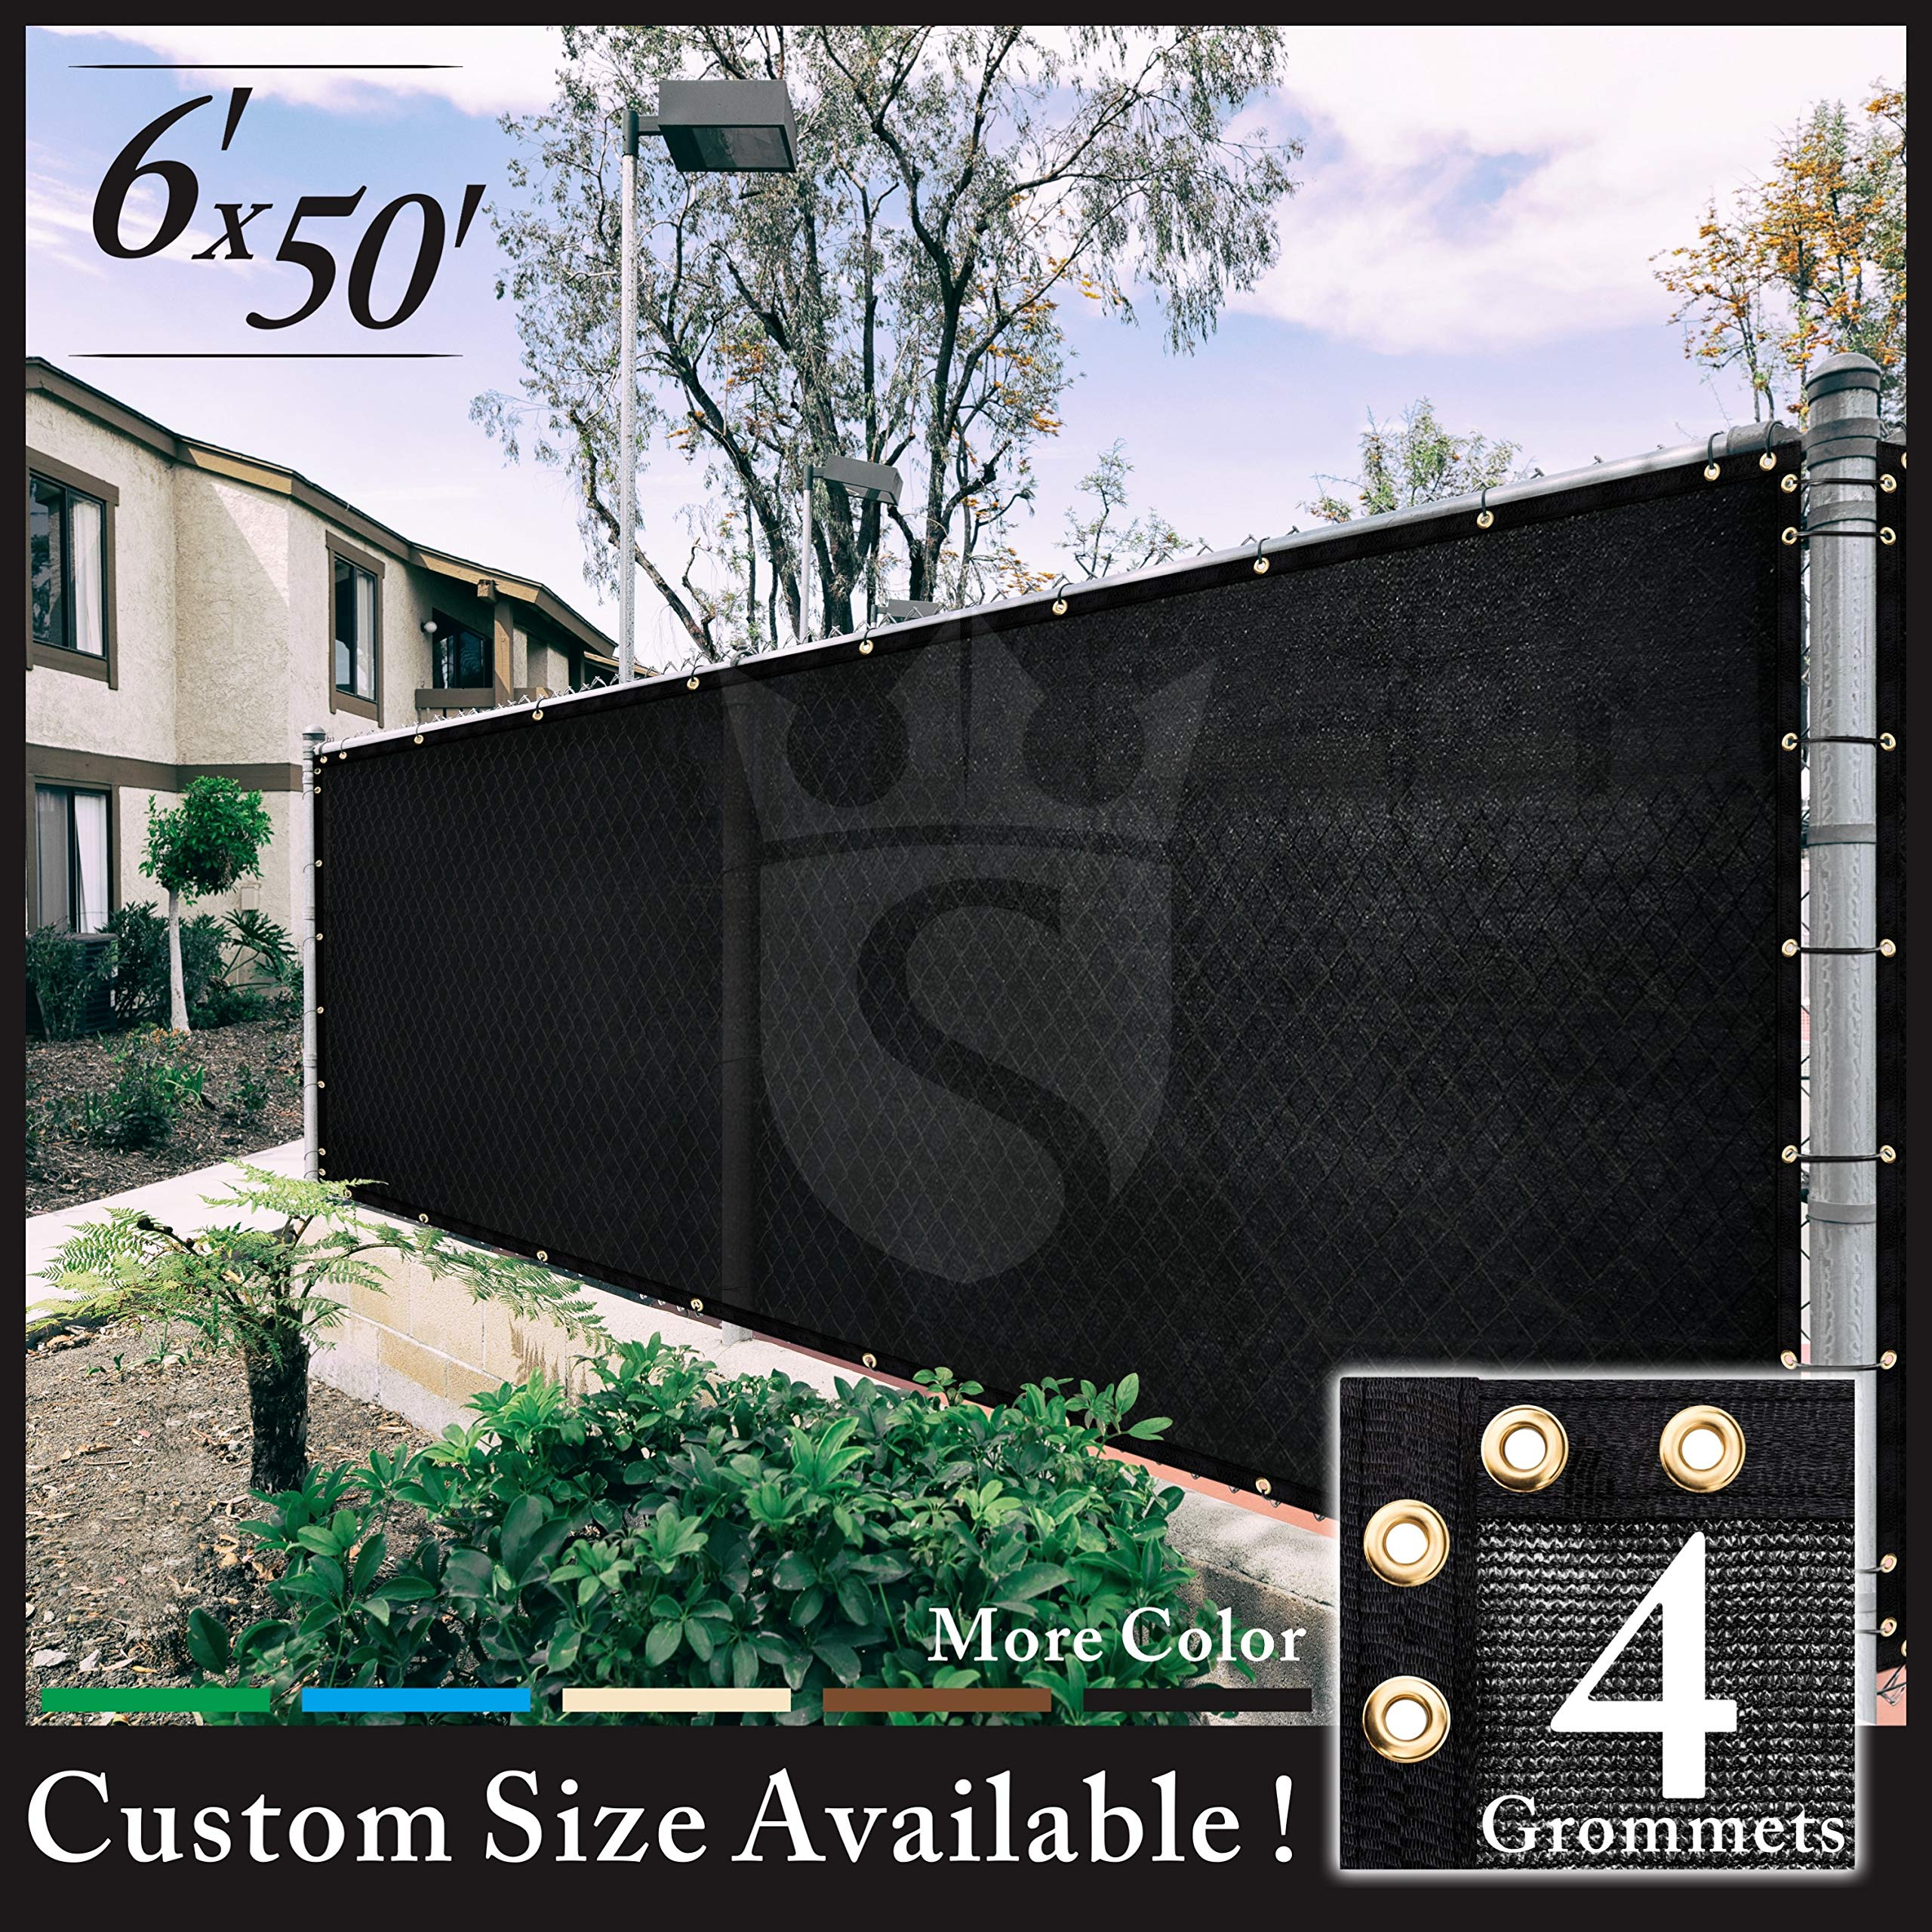 Royal Shade 6' x 50' Black Fence Privacy Screen Cover Windscreen, with Heavy Duty Brass Grommets, Custom Make Size